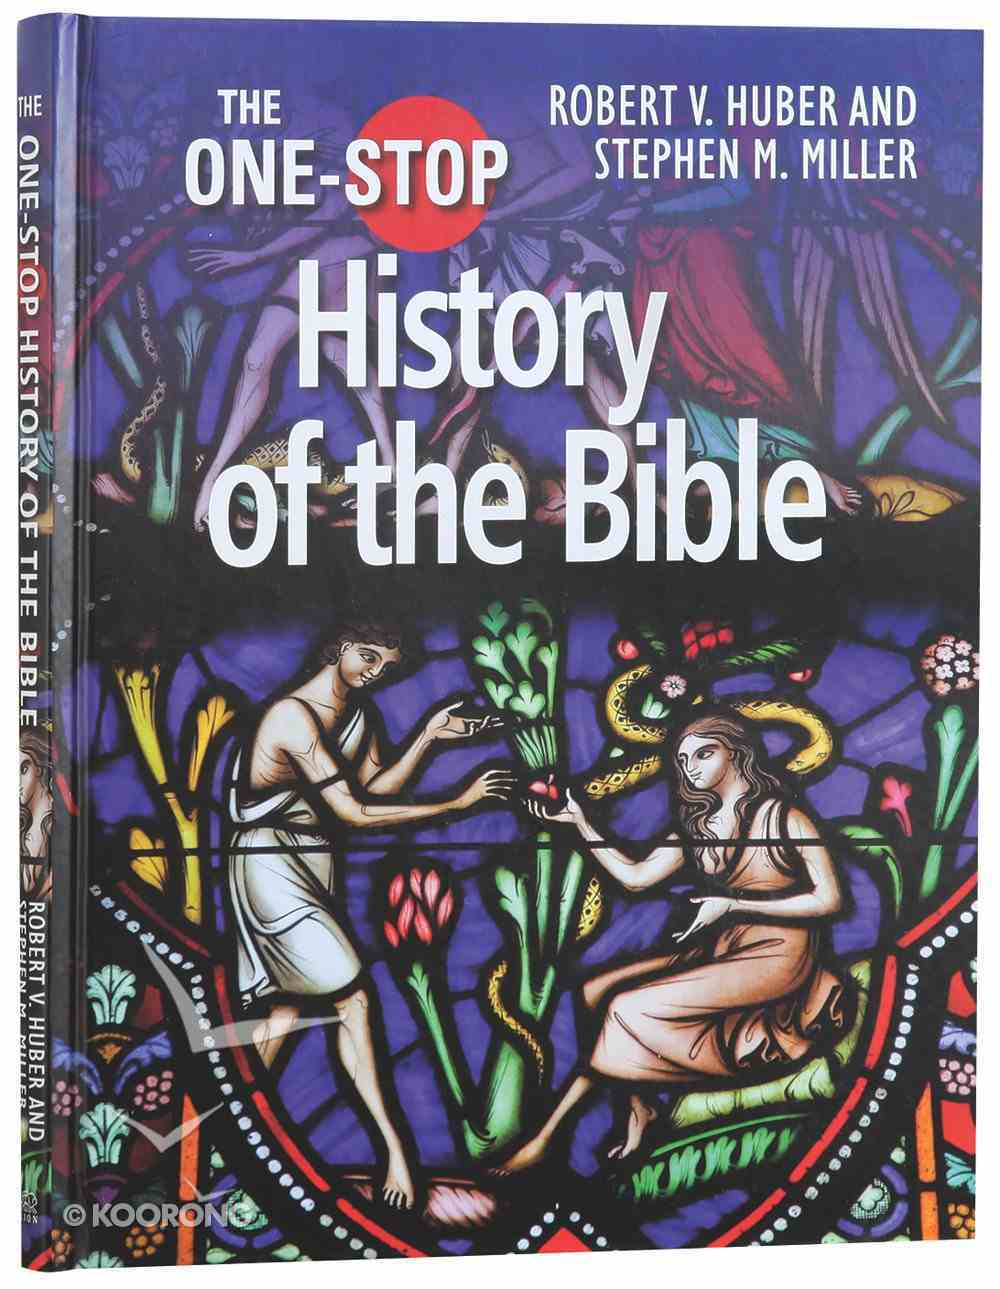 The One-Stop History of the Bible Hardback